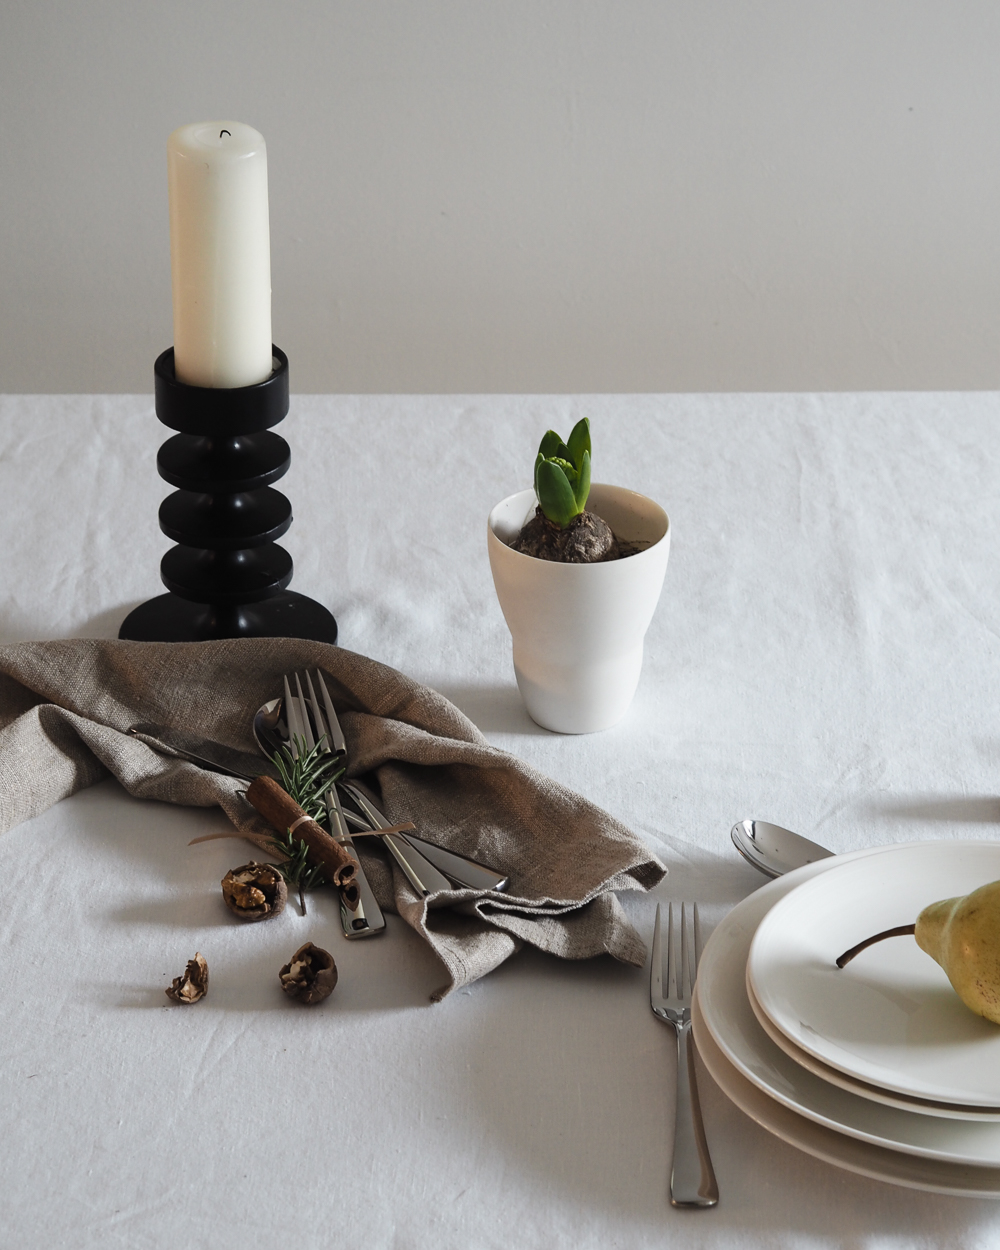 Robert Welch Malvern cutlery for festive table setting | Design Hunter